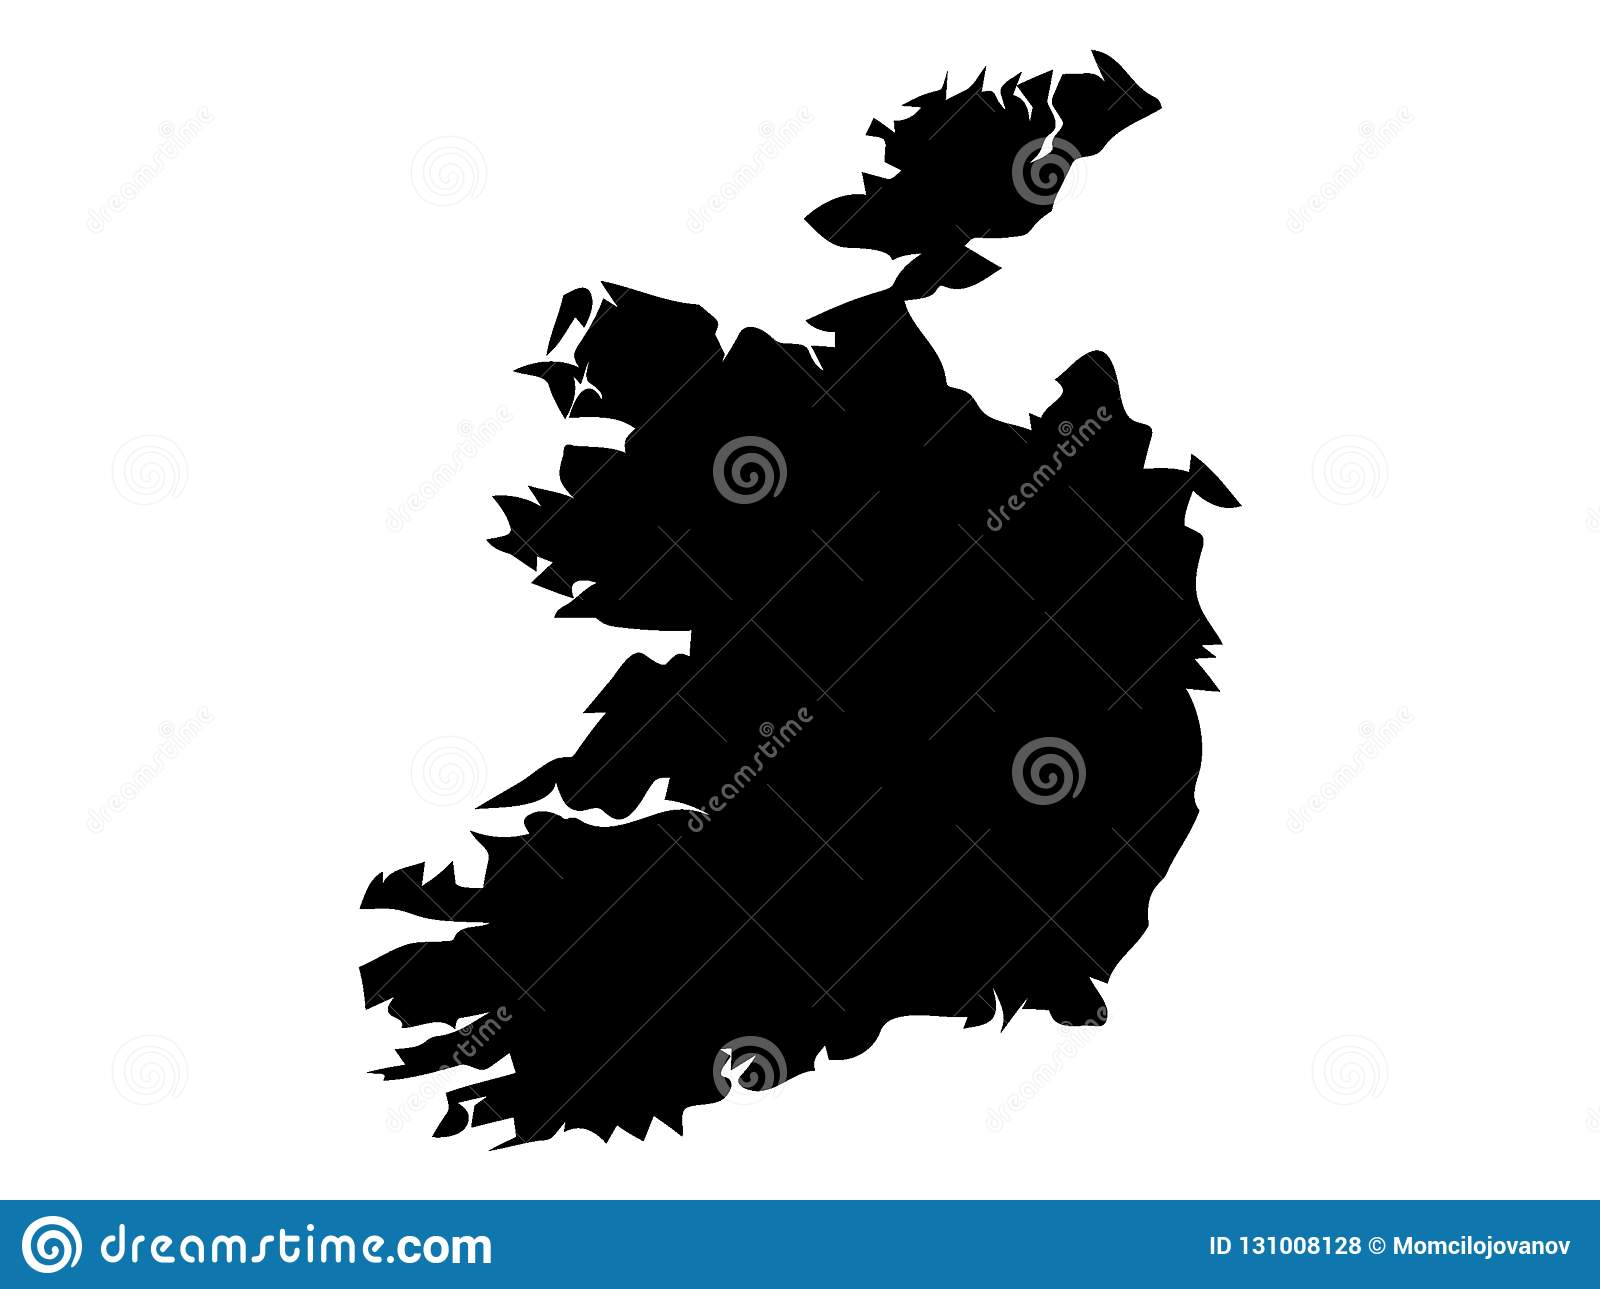 Detailed Map Of Ireland Vector.Black Map Of Ireland Stock Vector Illustration Of Netherlands